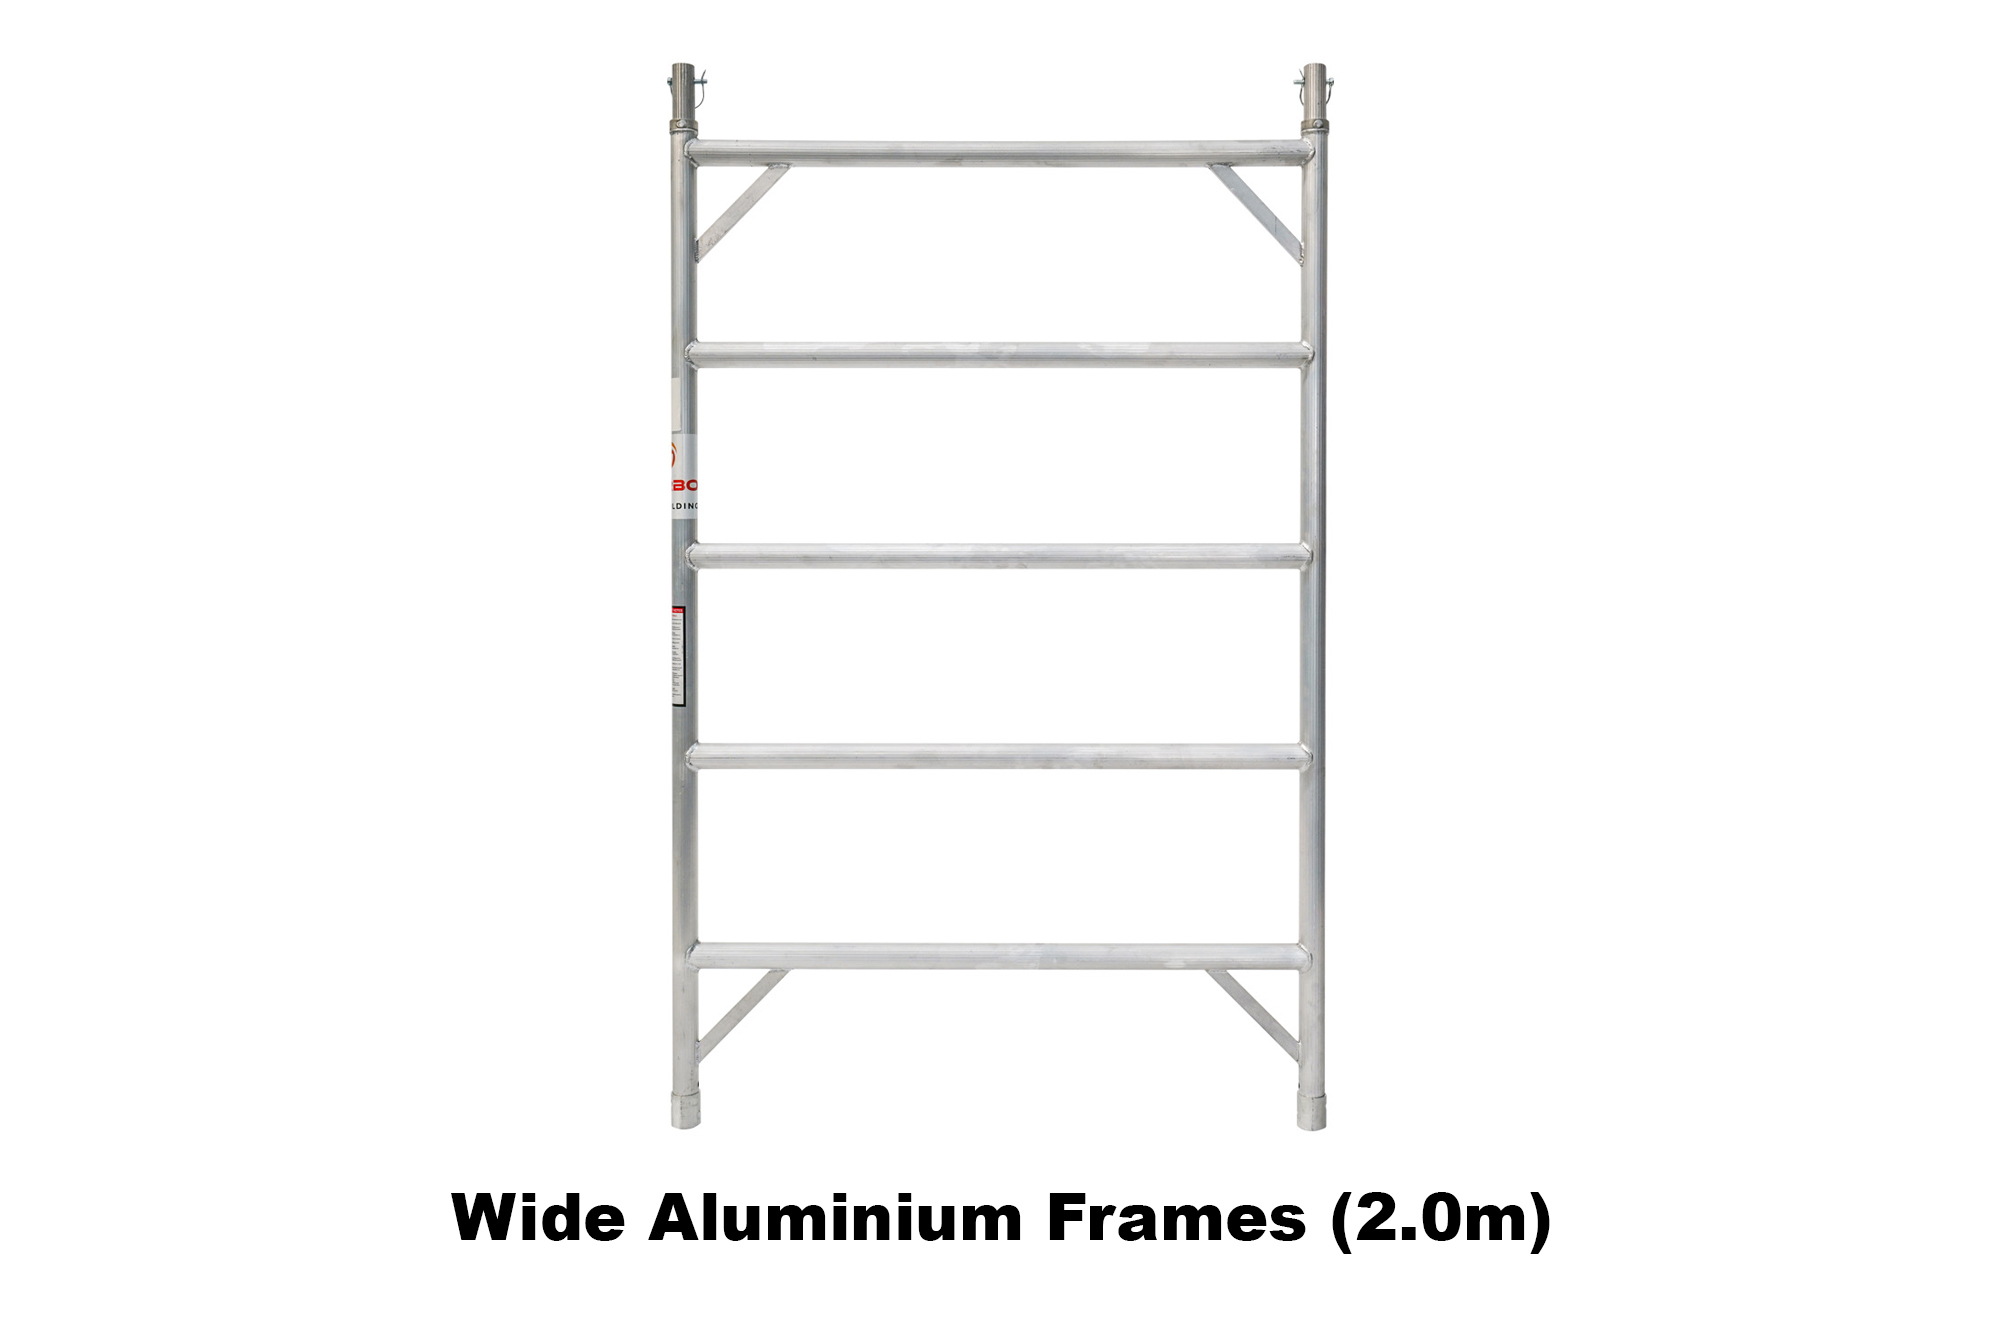 3.5m – 3.8m Wide Aluminium Mobile Scaffold Tower (Standing Height)